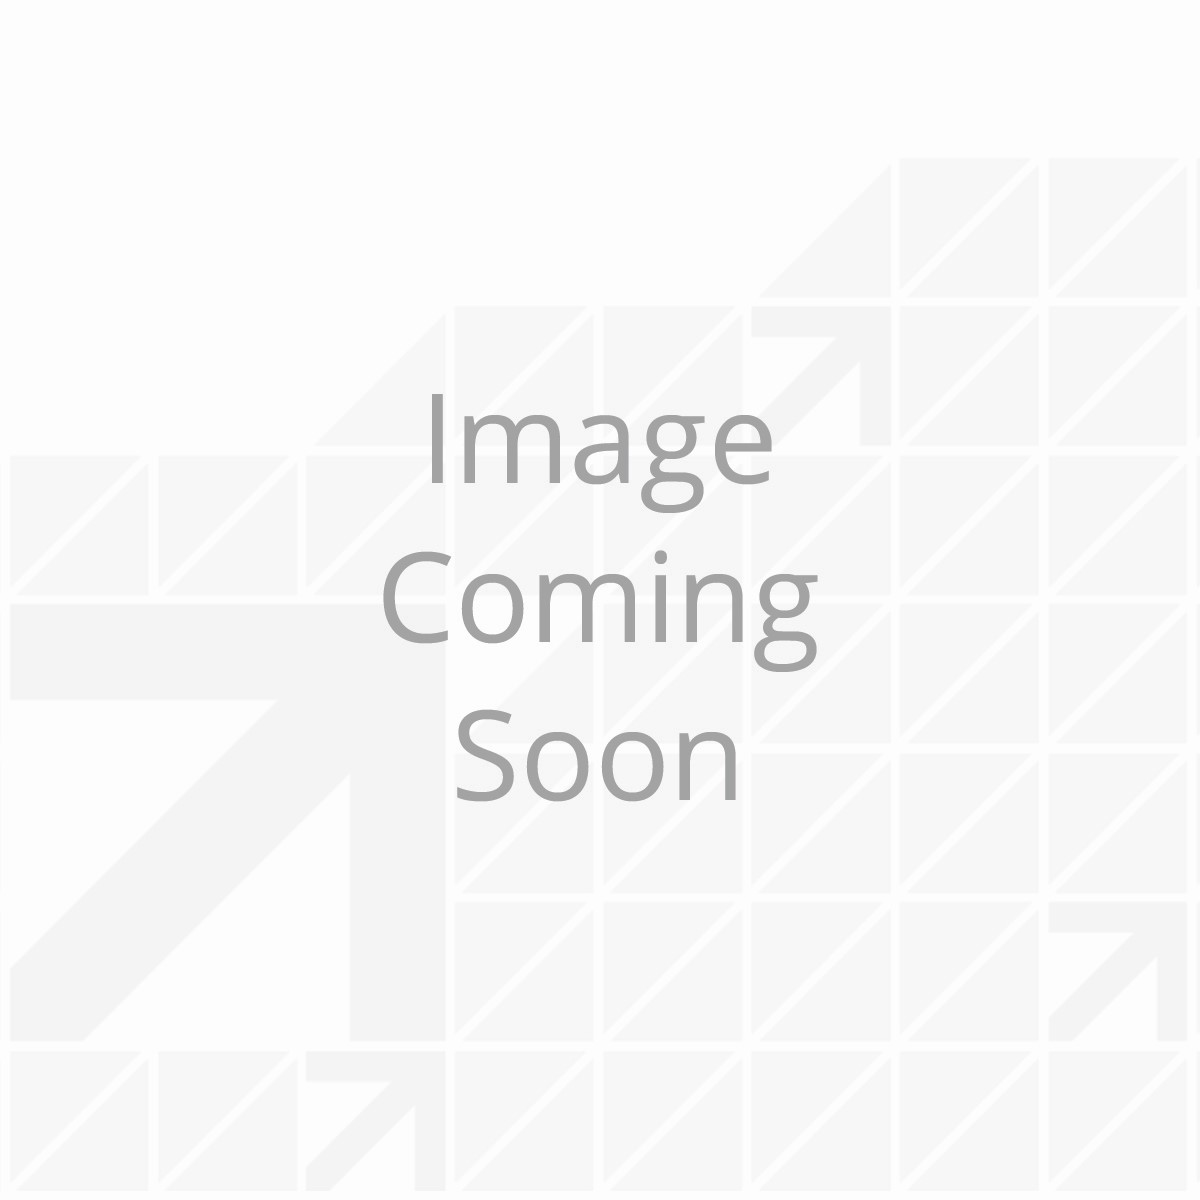 Hooded Sweatshirt - Light Grey